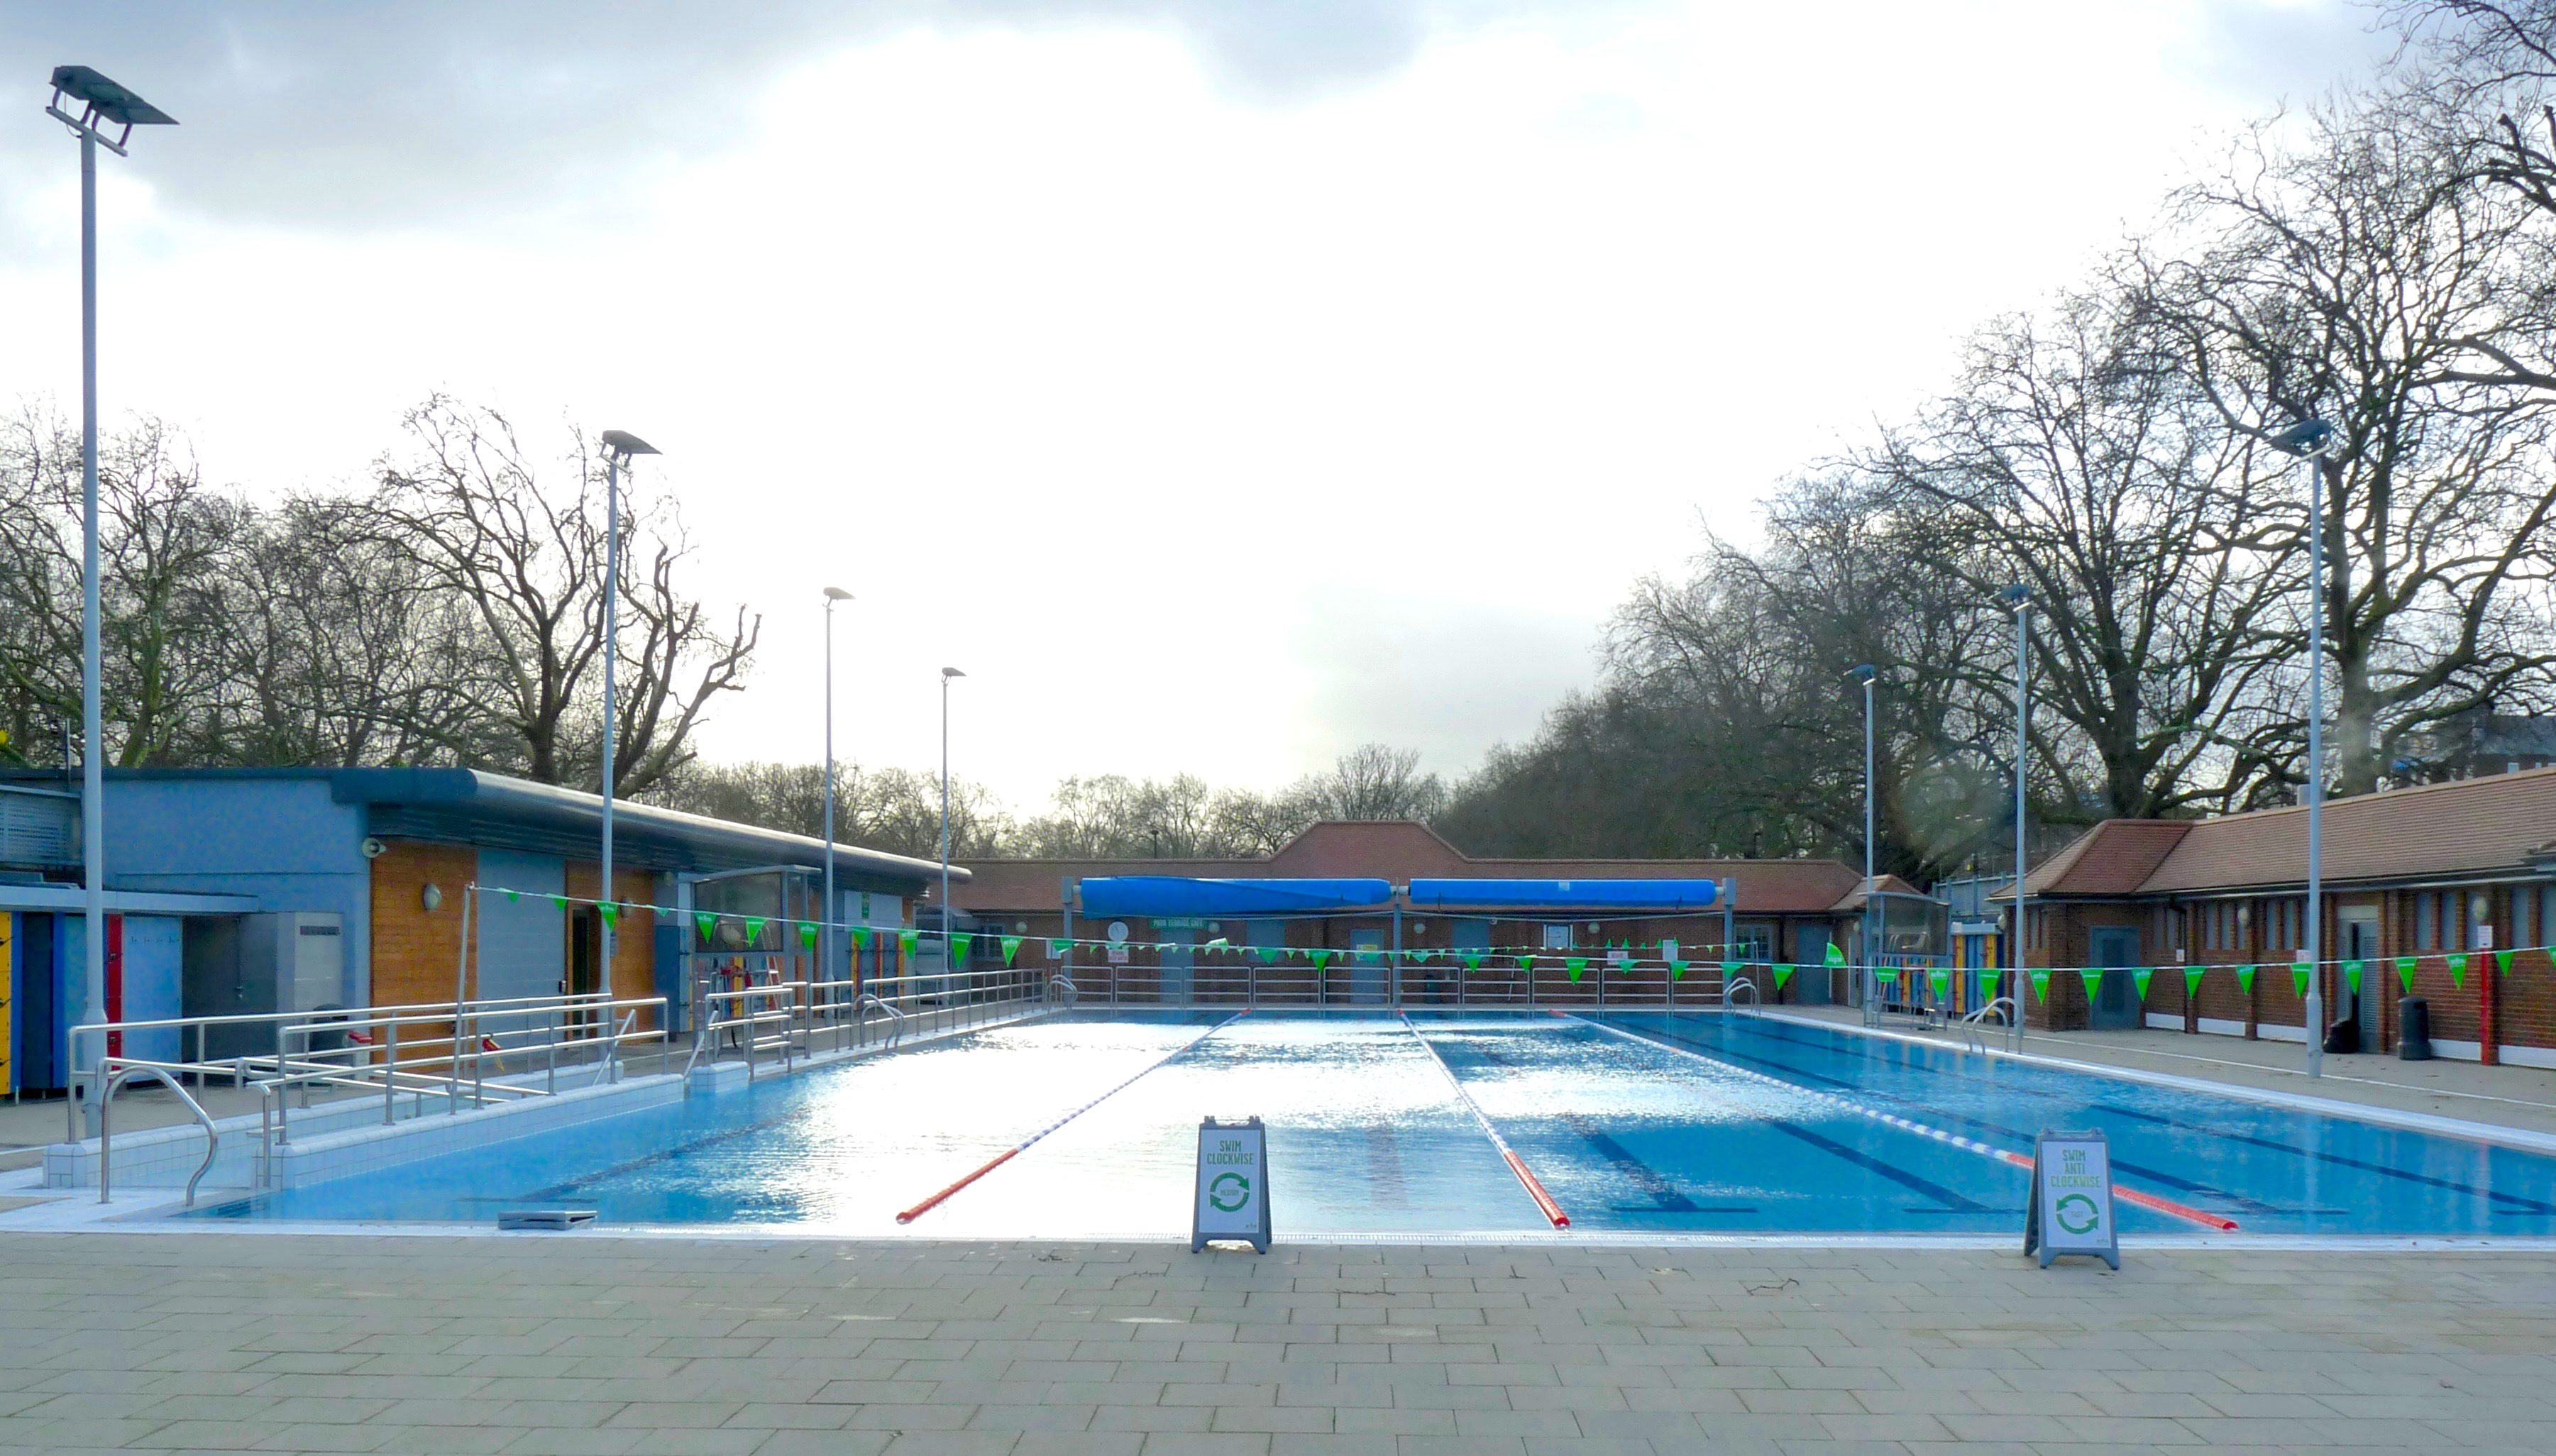 London Fields Lido Sink Or Swim For Refurbished Pool As Watershed Moment Approaches Loving